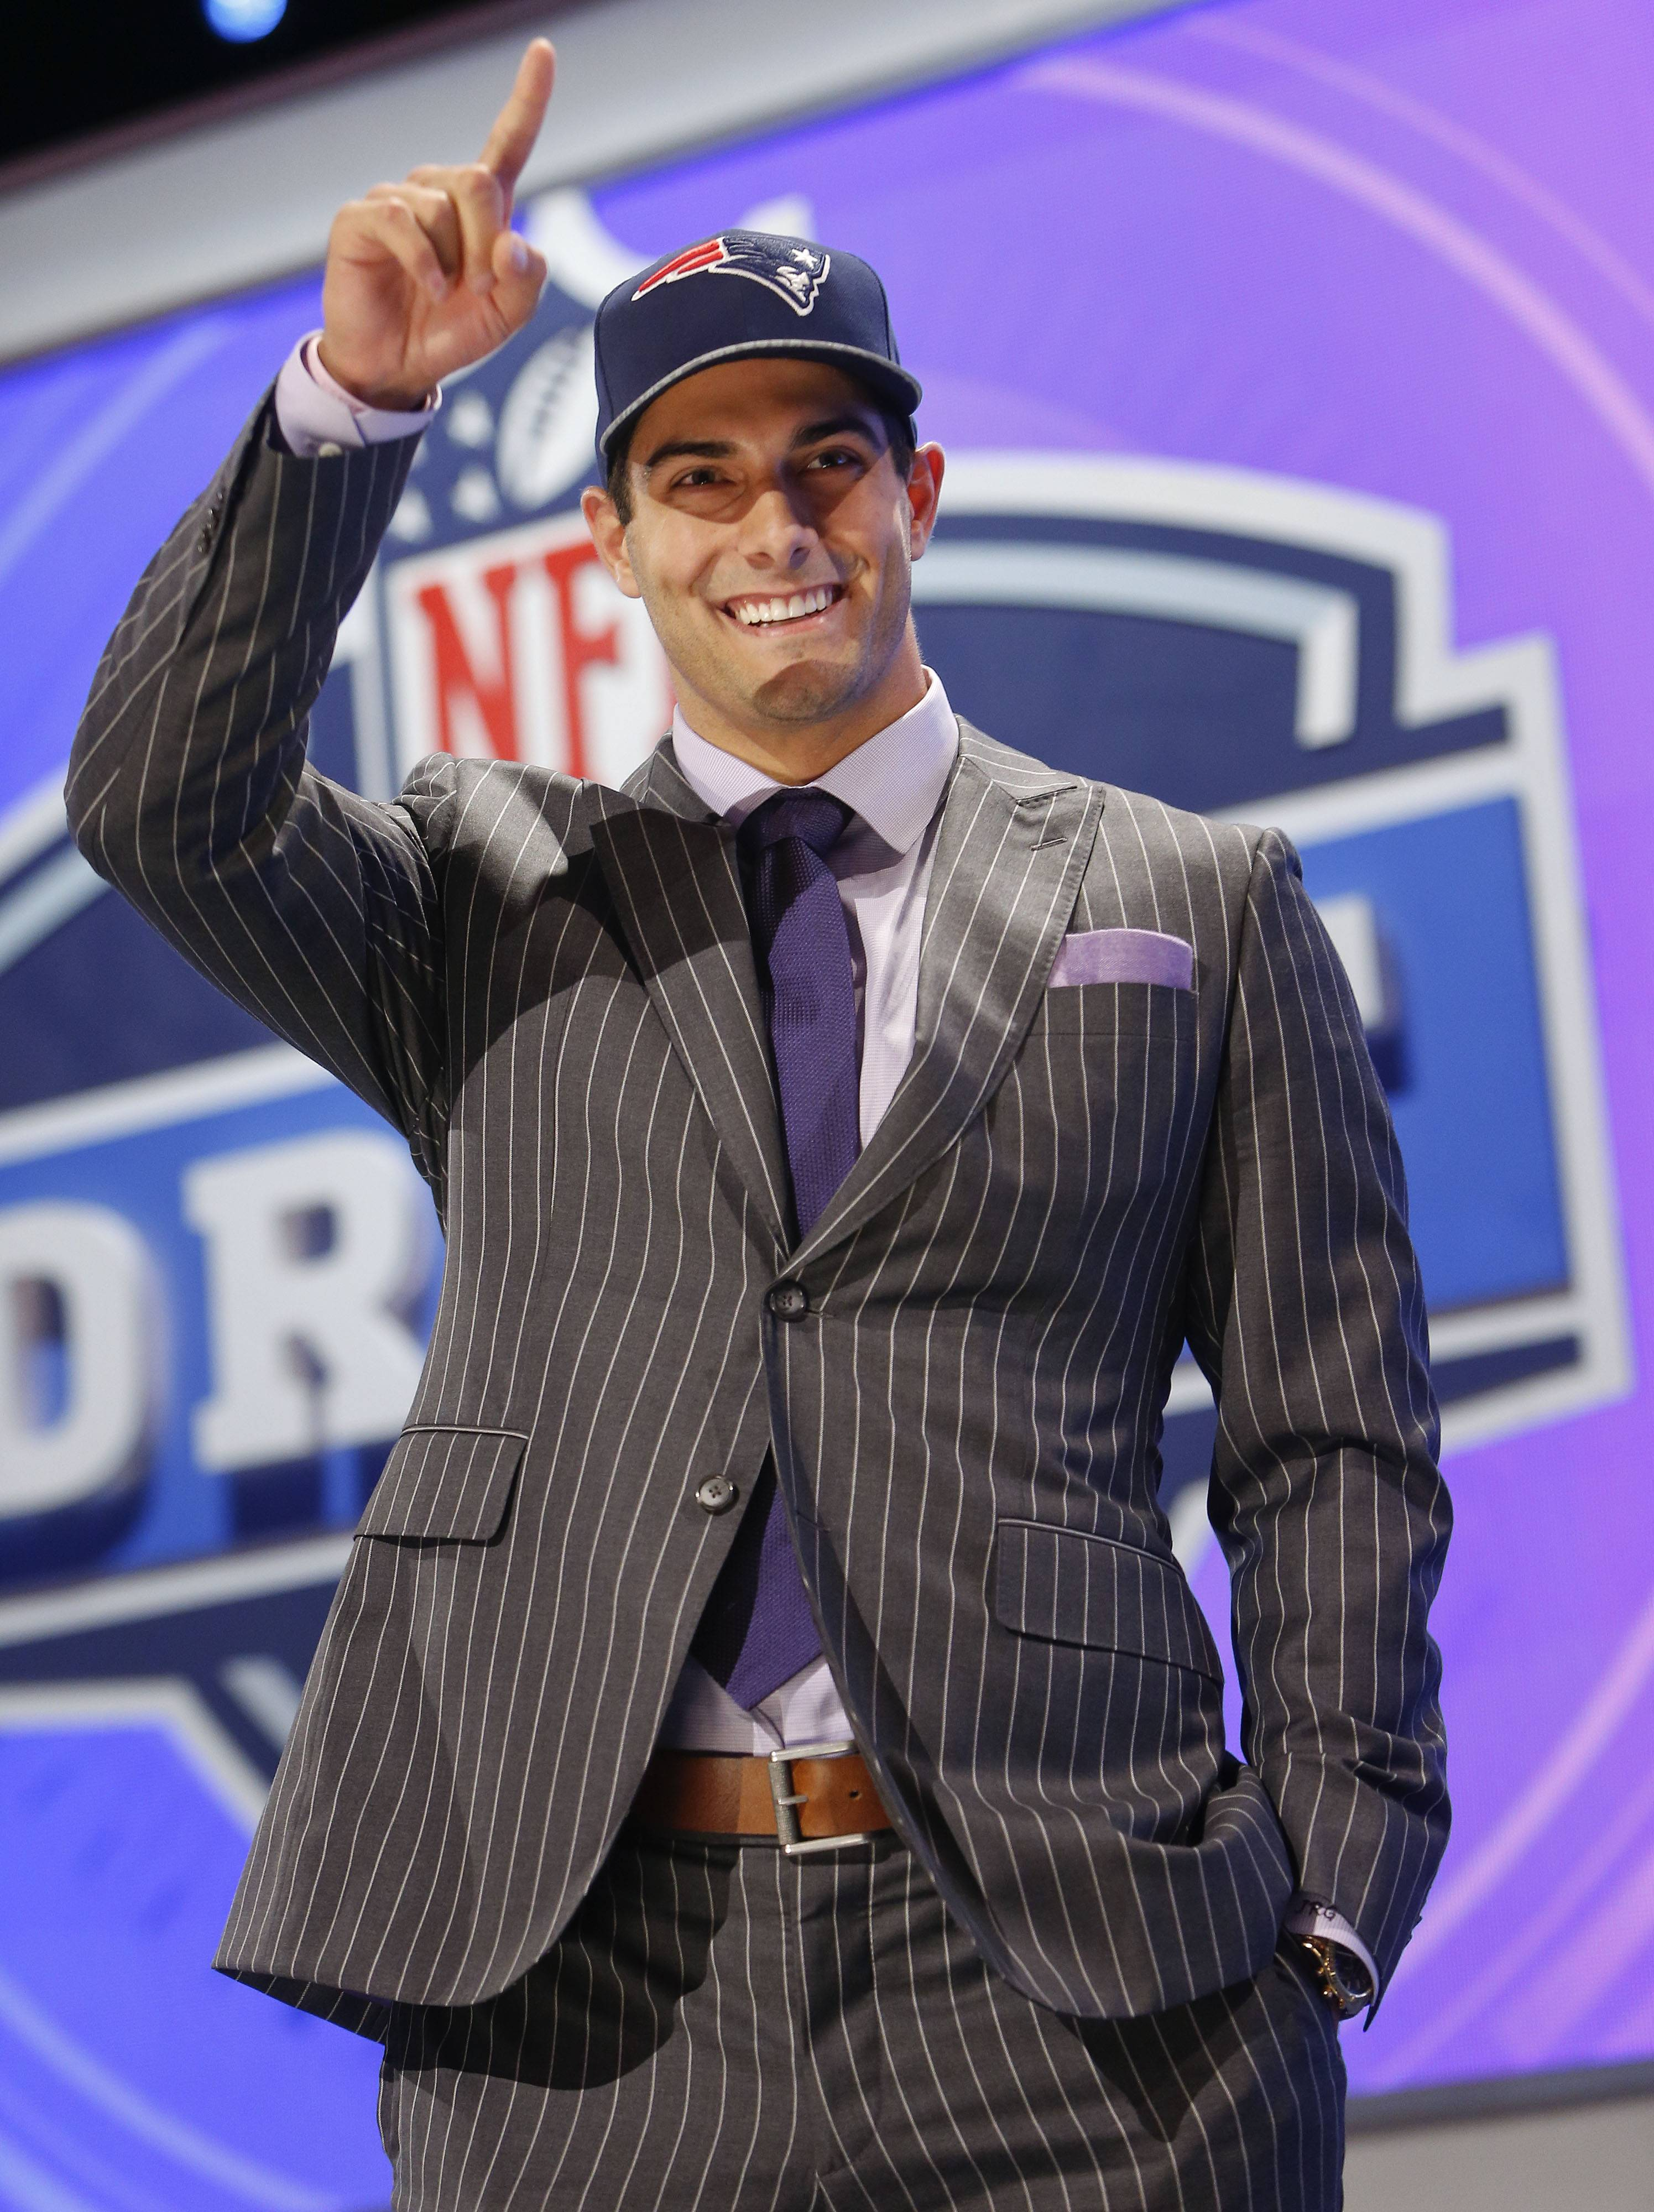 Patriots sign 2nd-round pick QB Garoppolo